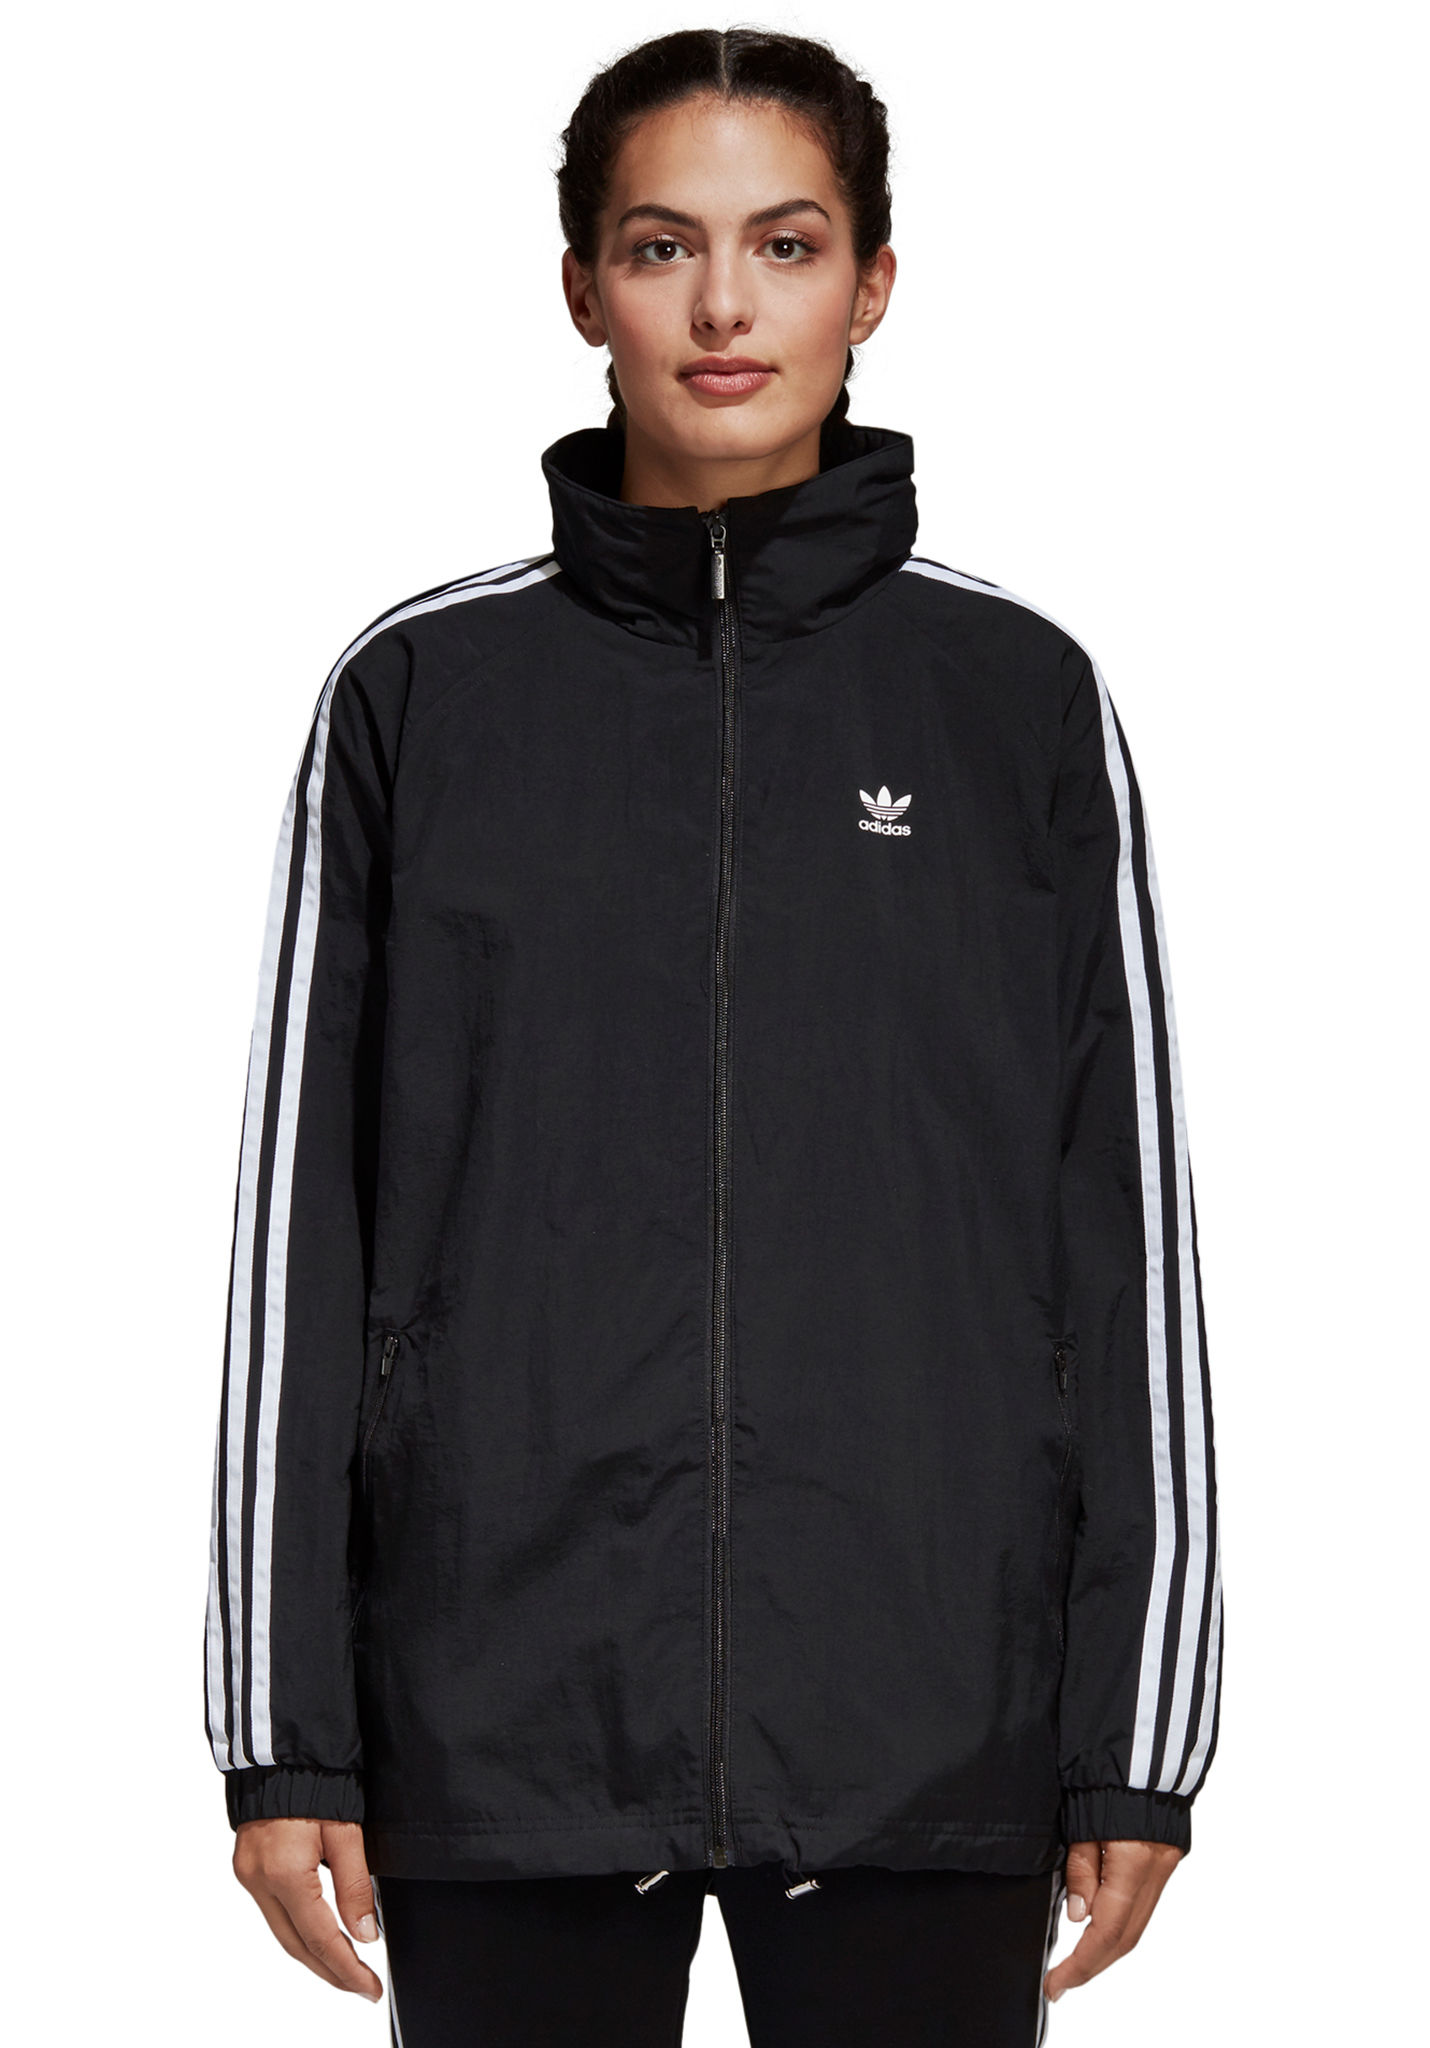 adidas jacke damen windbreaker superjacken 2018. Black Bedroom Furniture Sets. Home Design Ideas